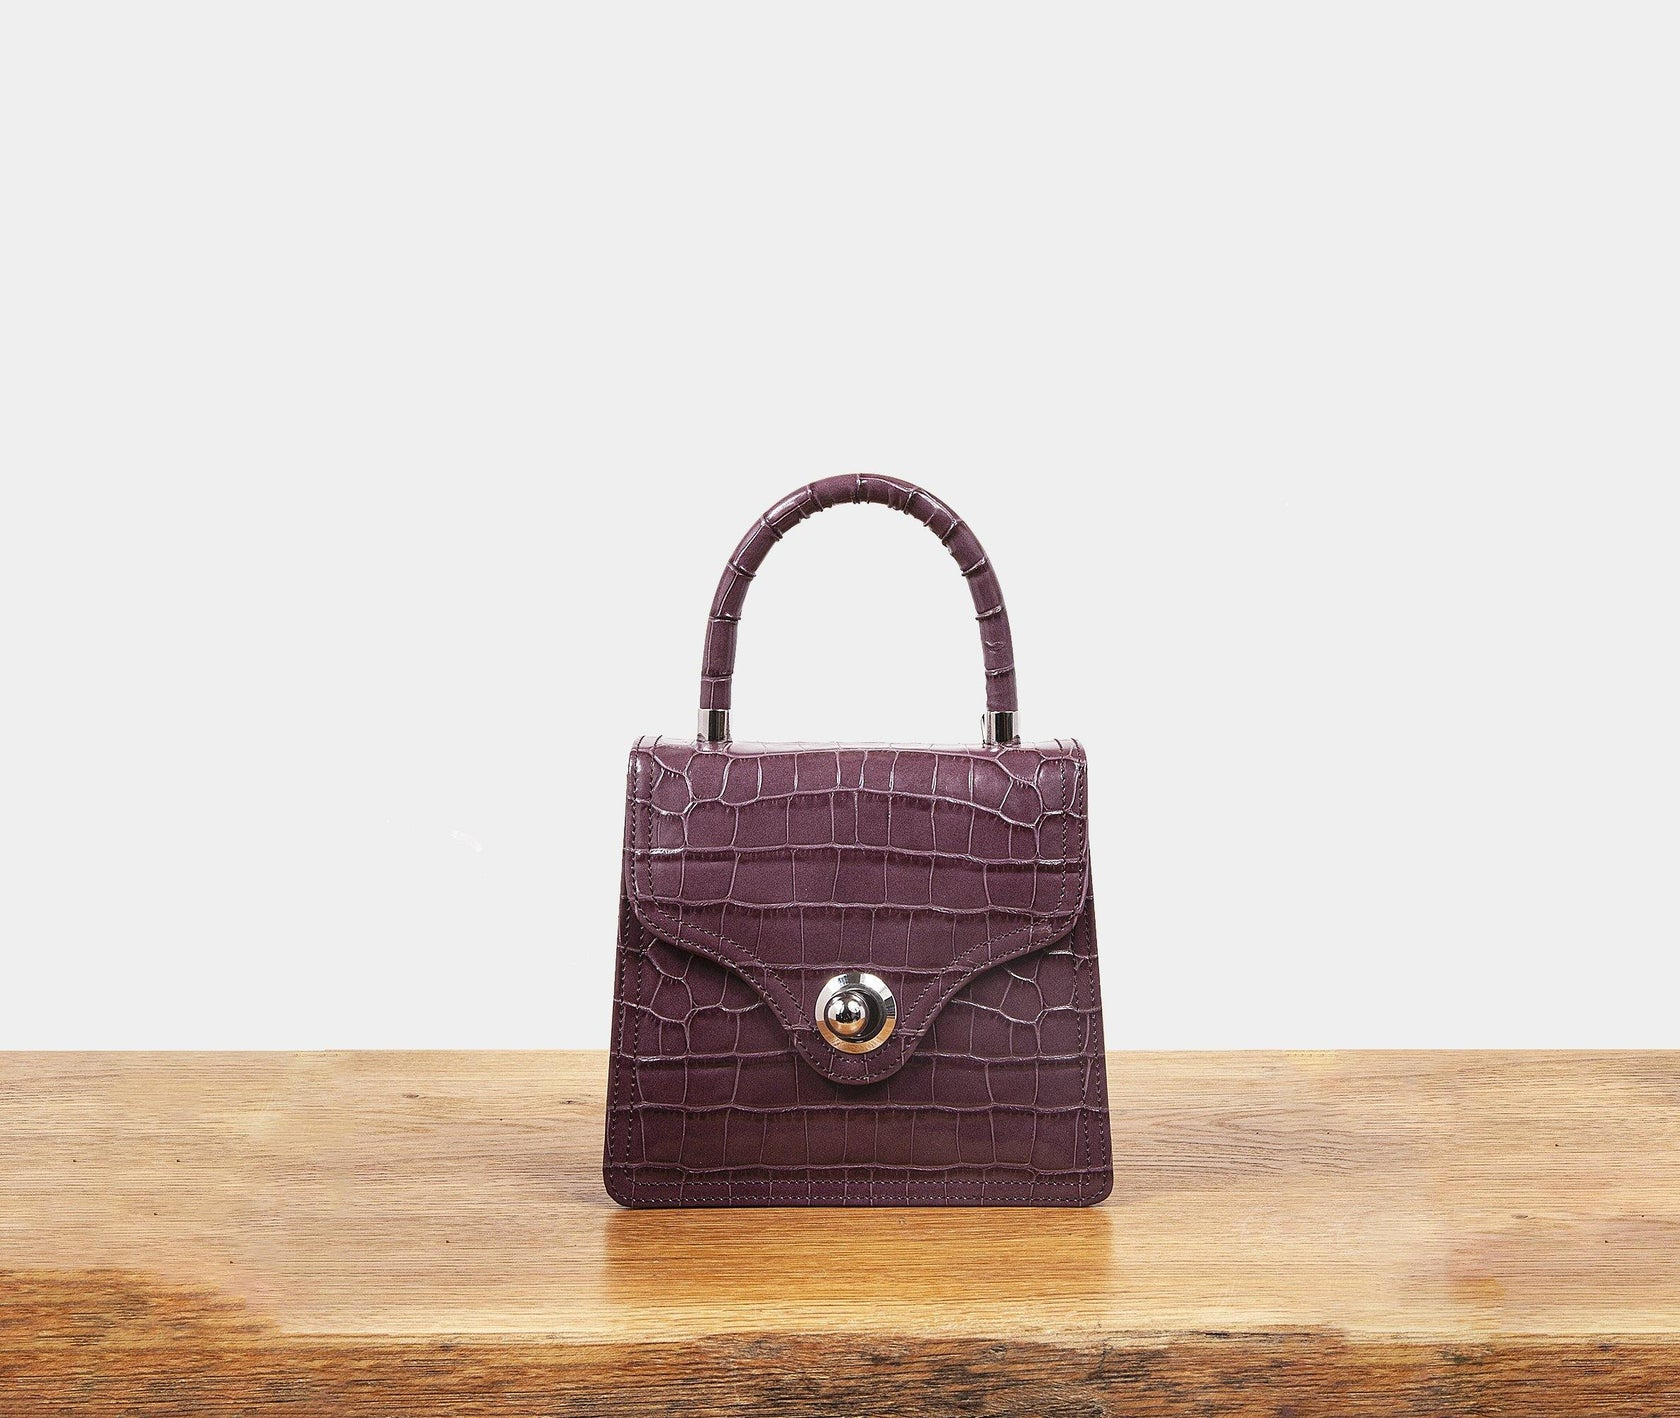 Lady Bag - Brown Rose Croc - RATIO ET MOTUS